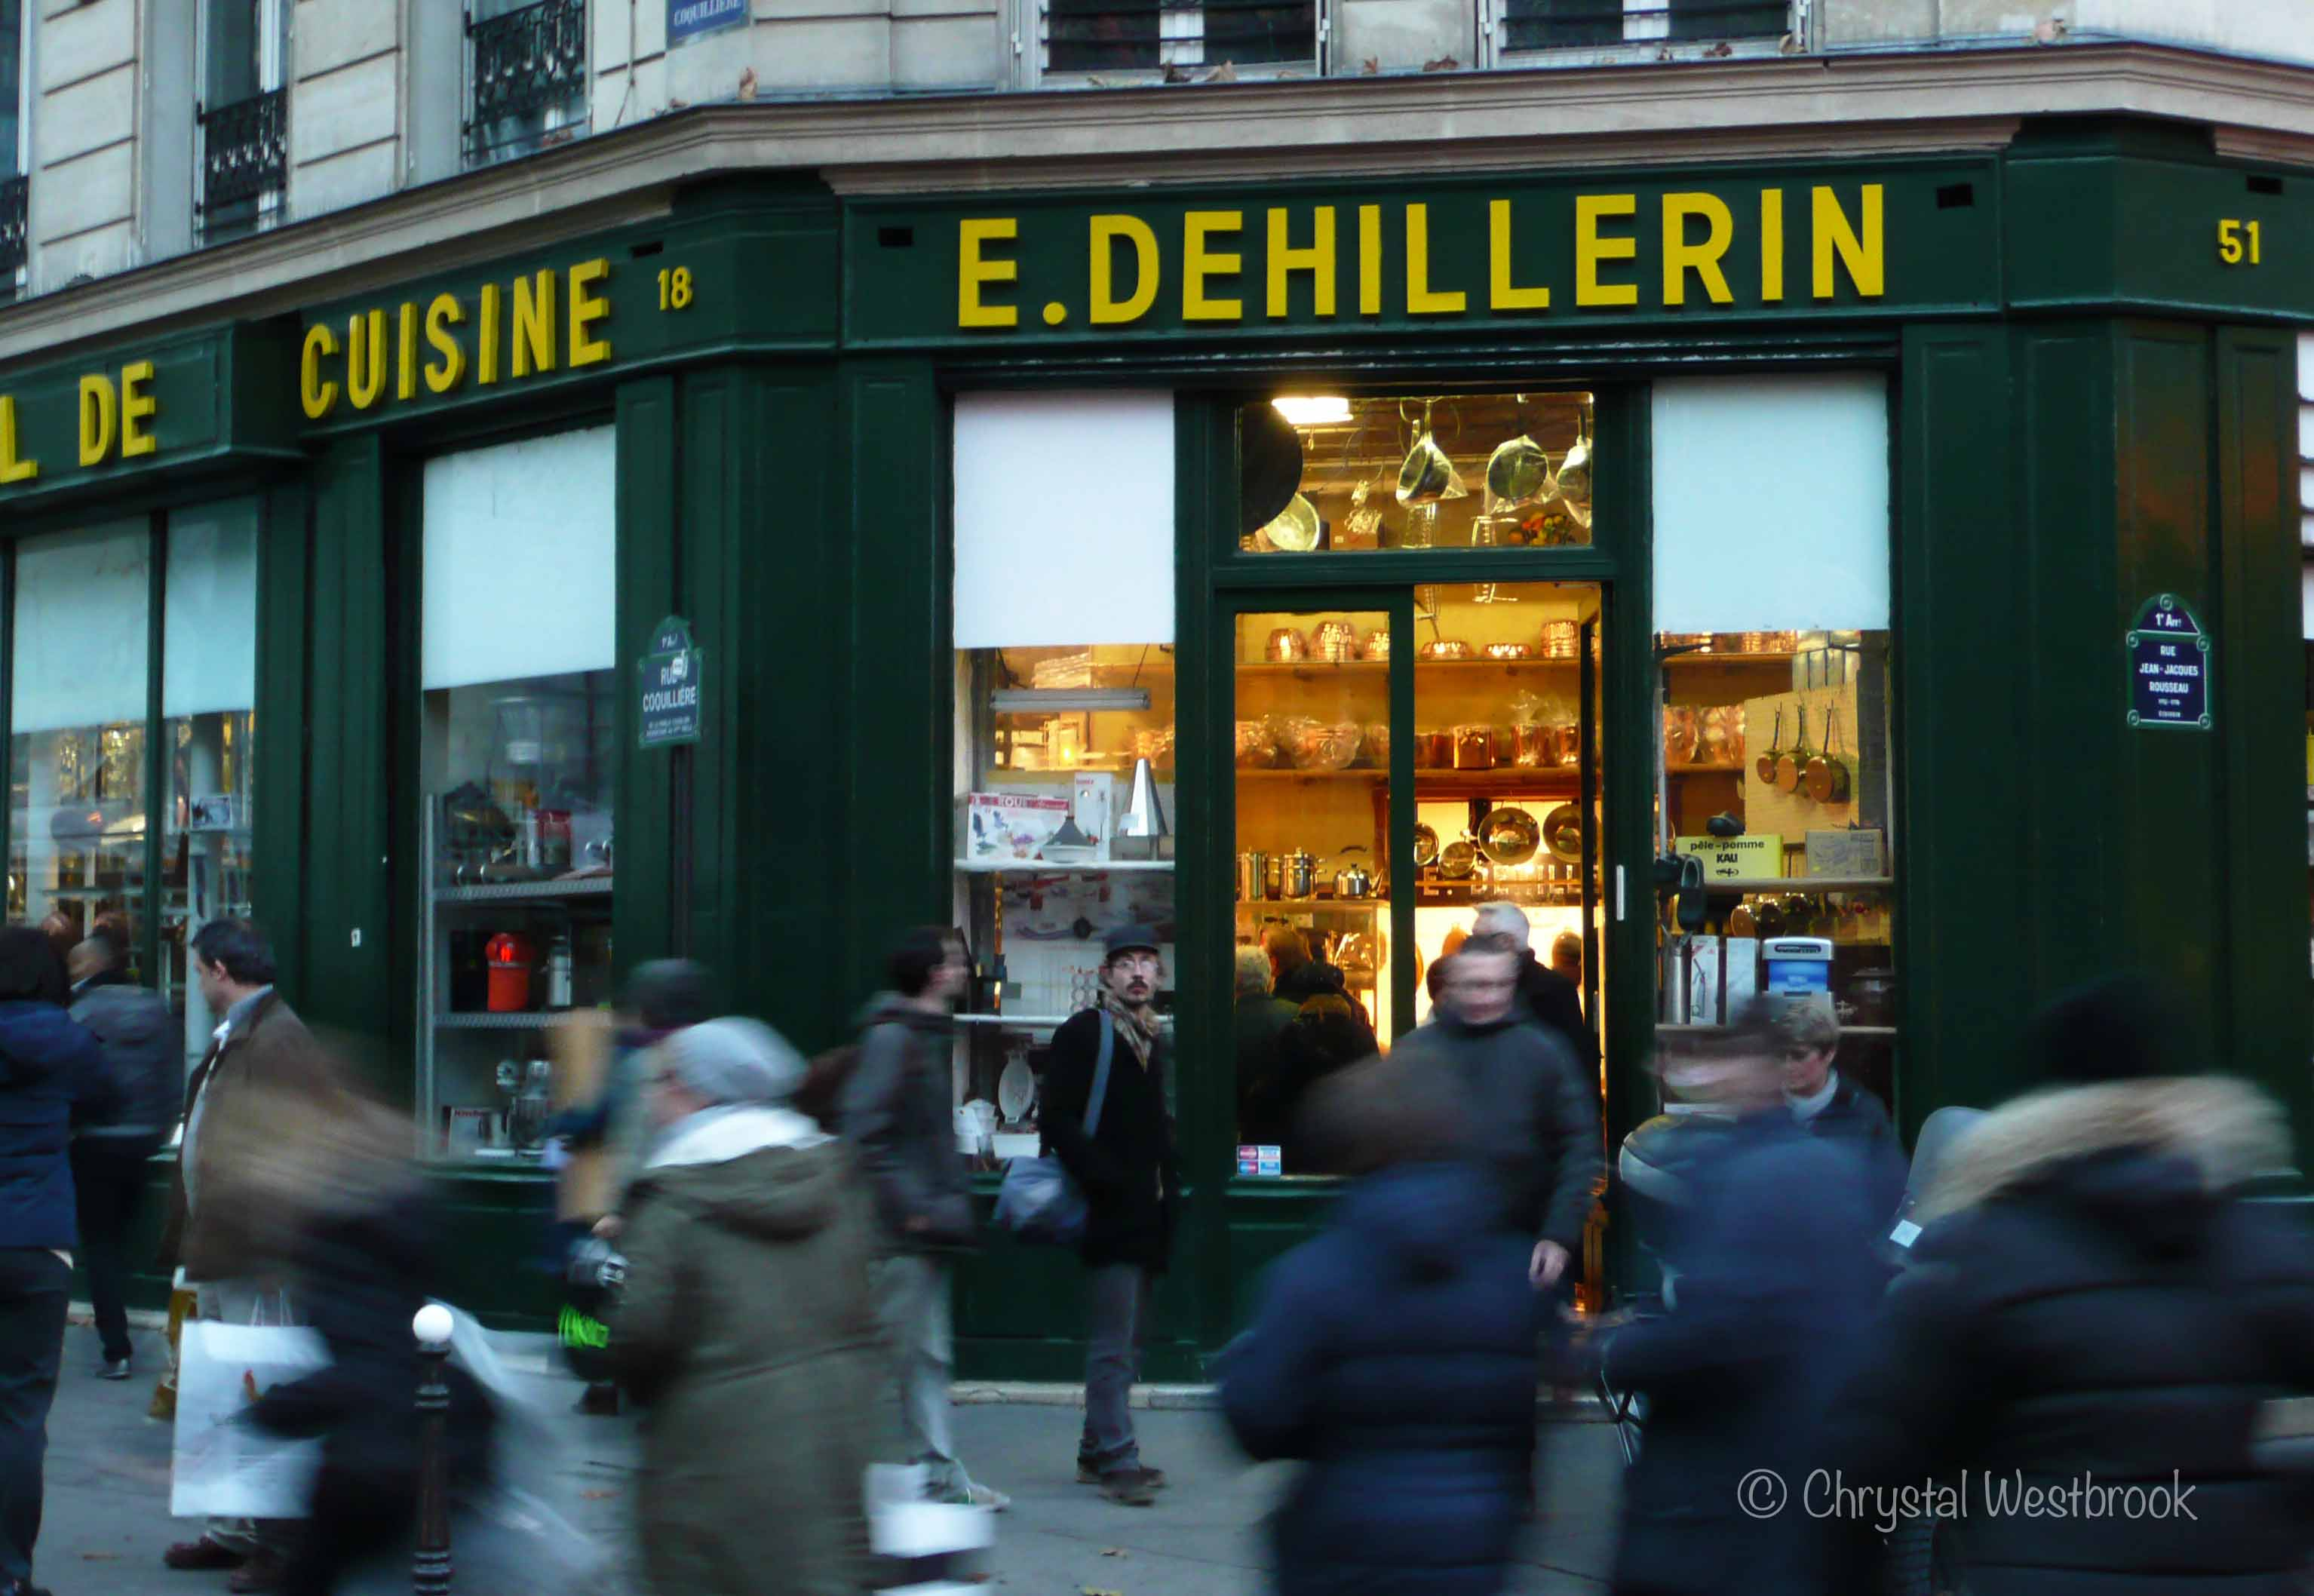 [IMAGE] Shoppers rushing by the well-lit entrance to a Parisian store